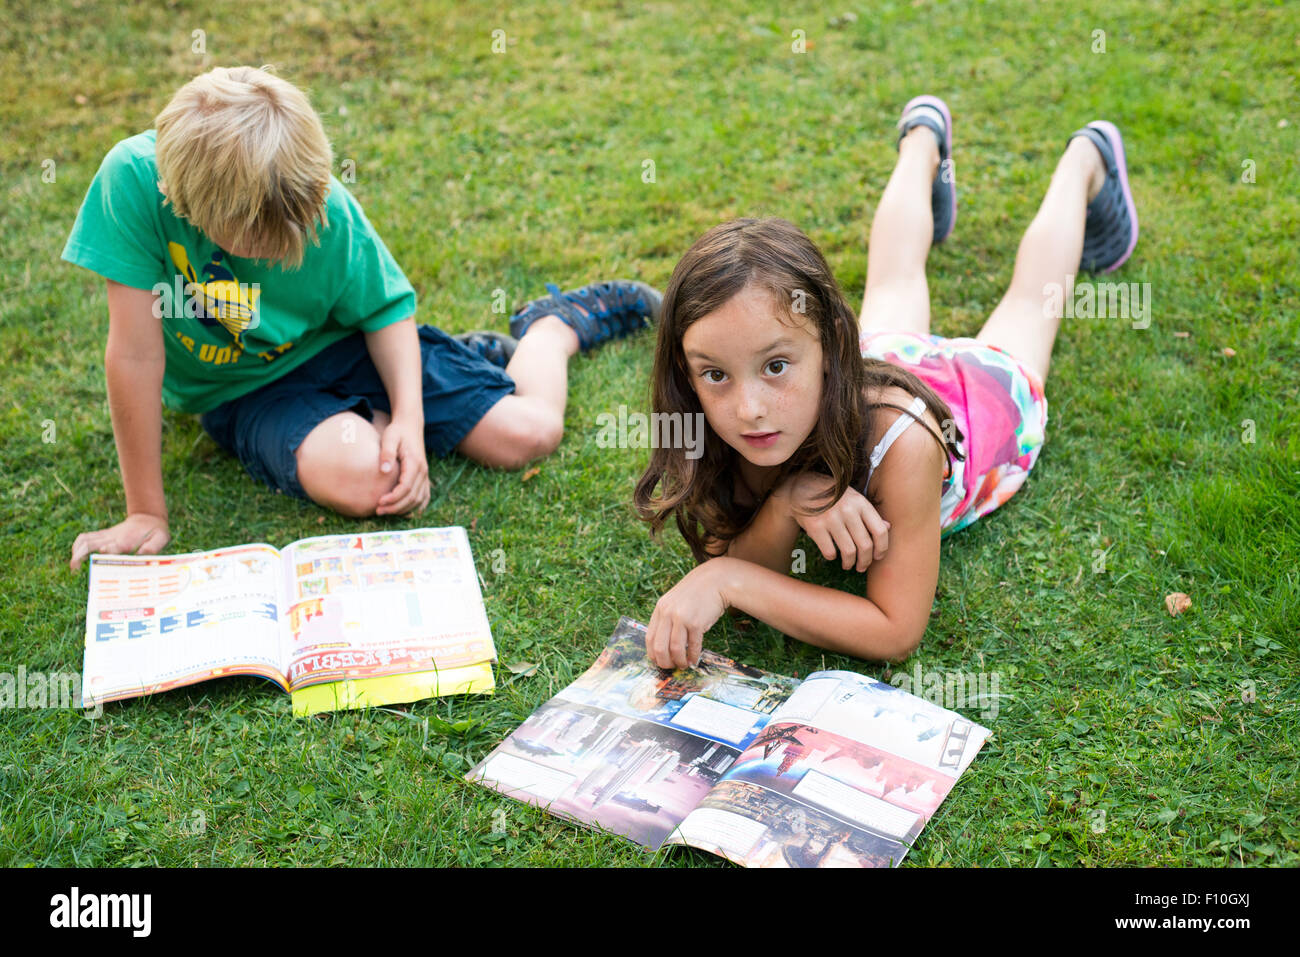 Kids reading together enjoying and reading a magazine laying on the grass outdoors Stock Photo